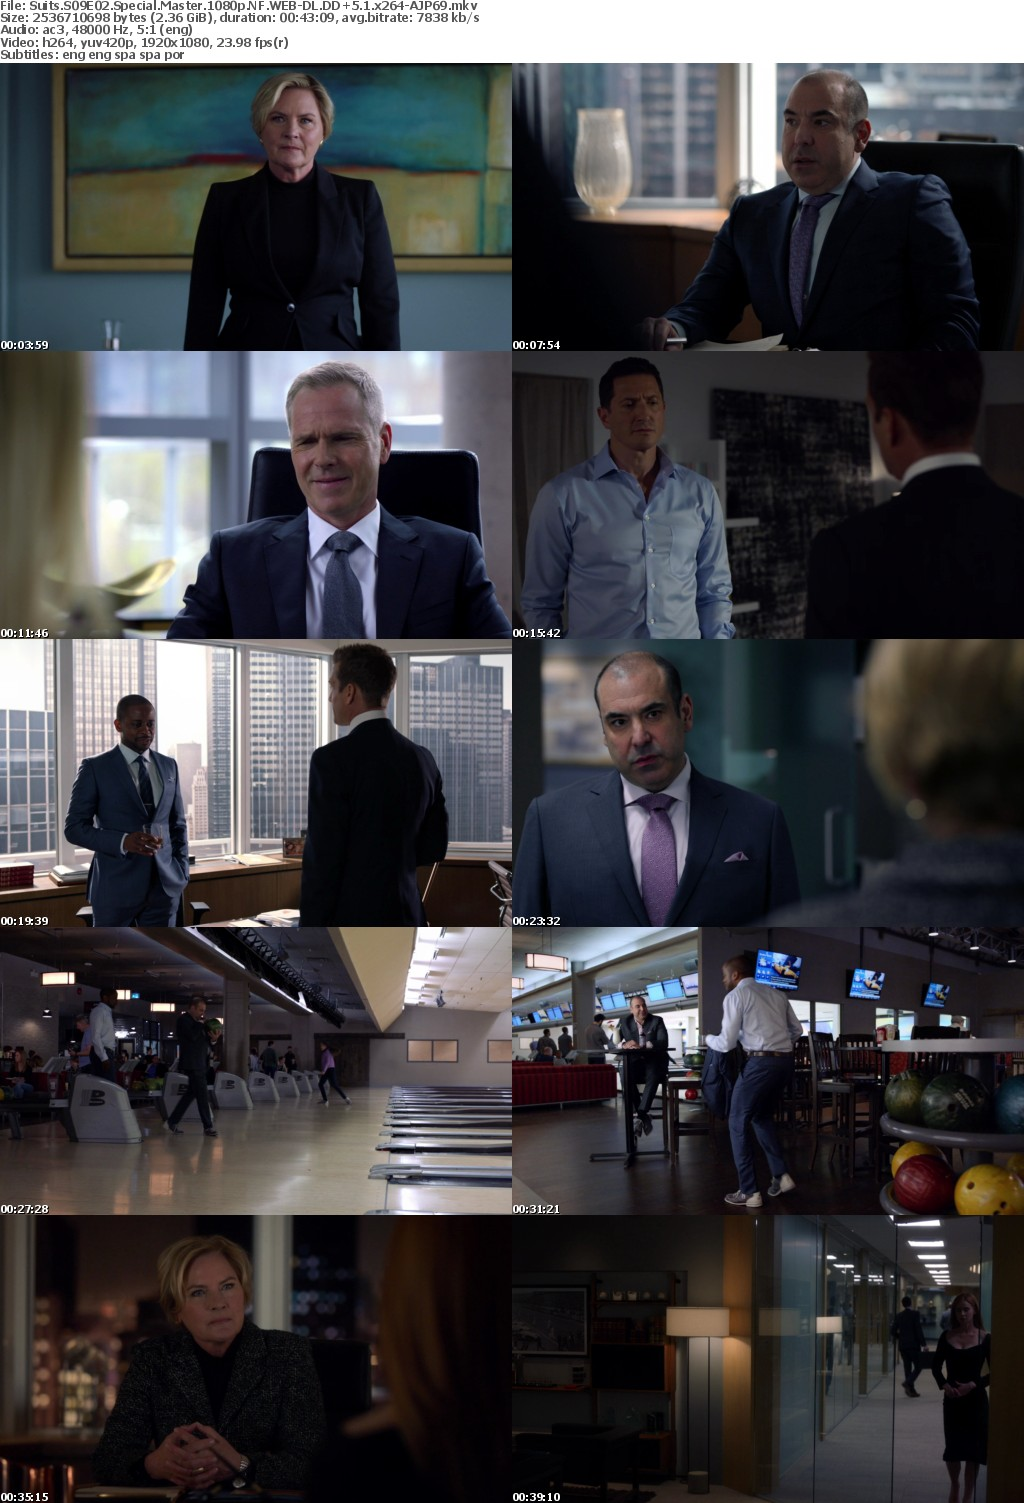 Suits S09E02 Special Master 1080p NF WEB-DL DD+5 1 x264-AJP69